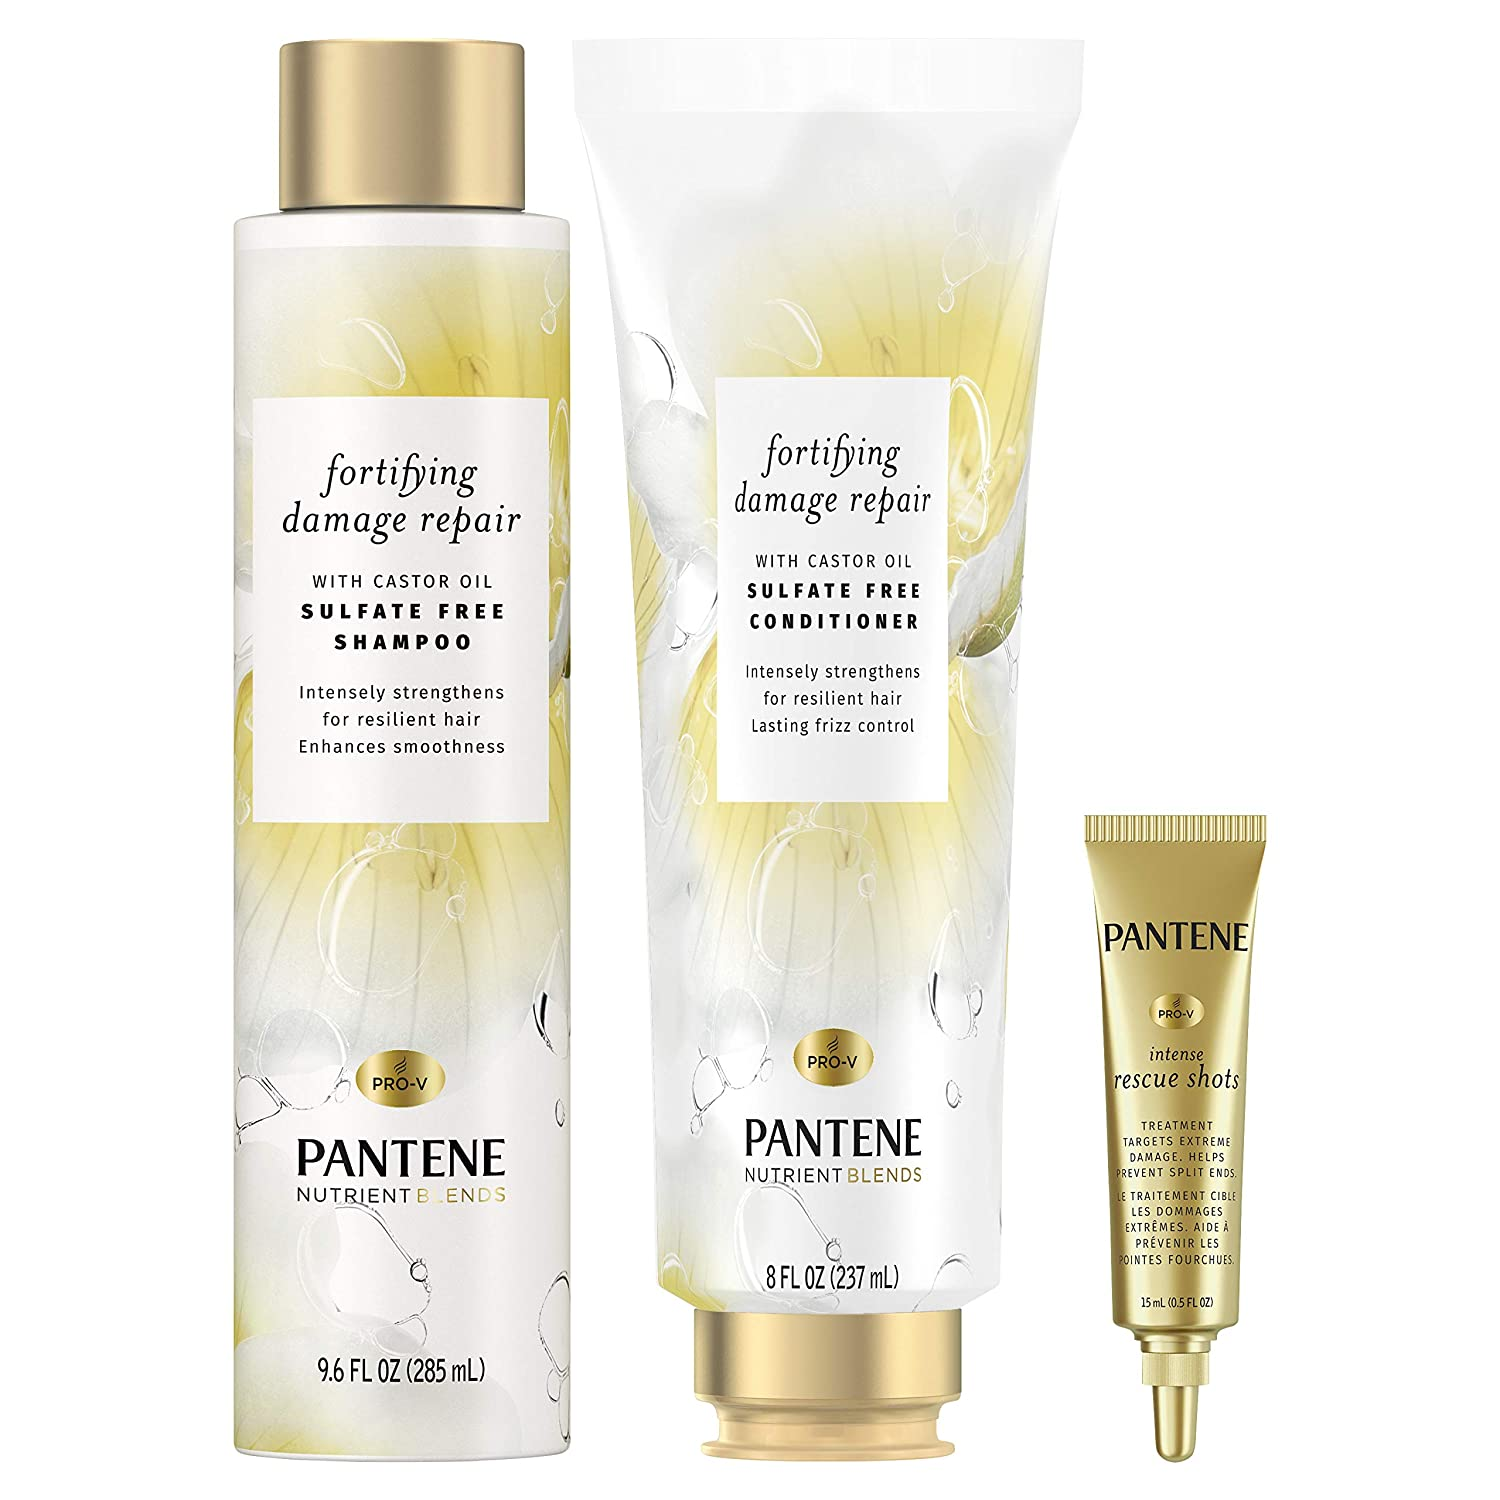 Pantene Shampoo & Conditioner + Rescue Shot Treatment, with Castor Oil, Nutrient Blends Fortifying Damage Repair, Sulfate Free